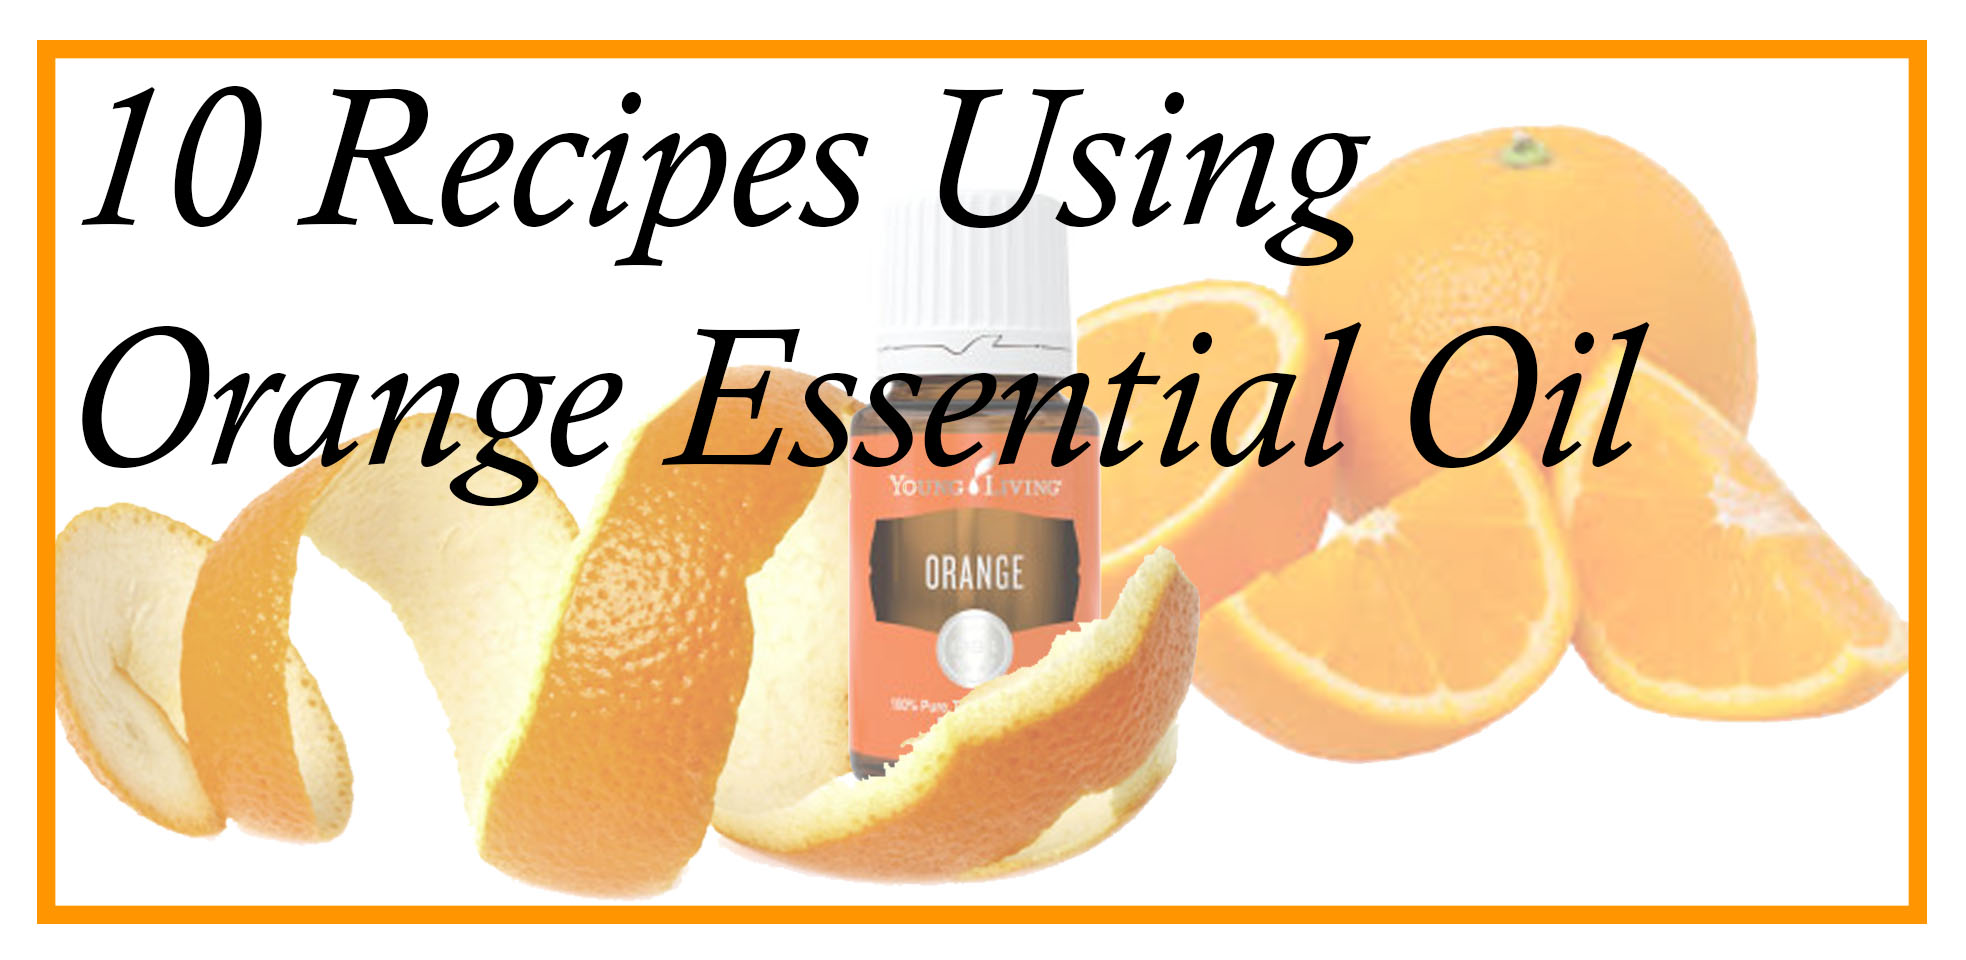 10 Orange Essential Oil Recipes